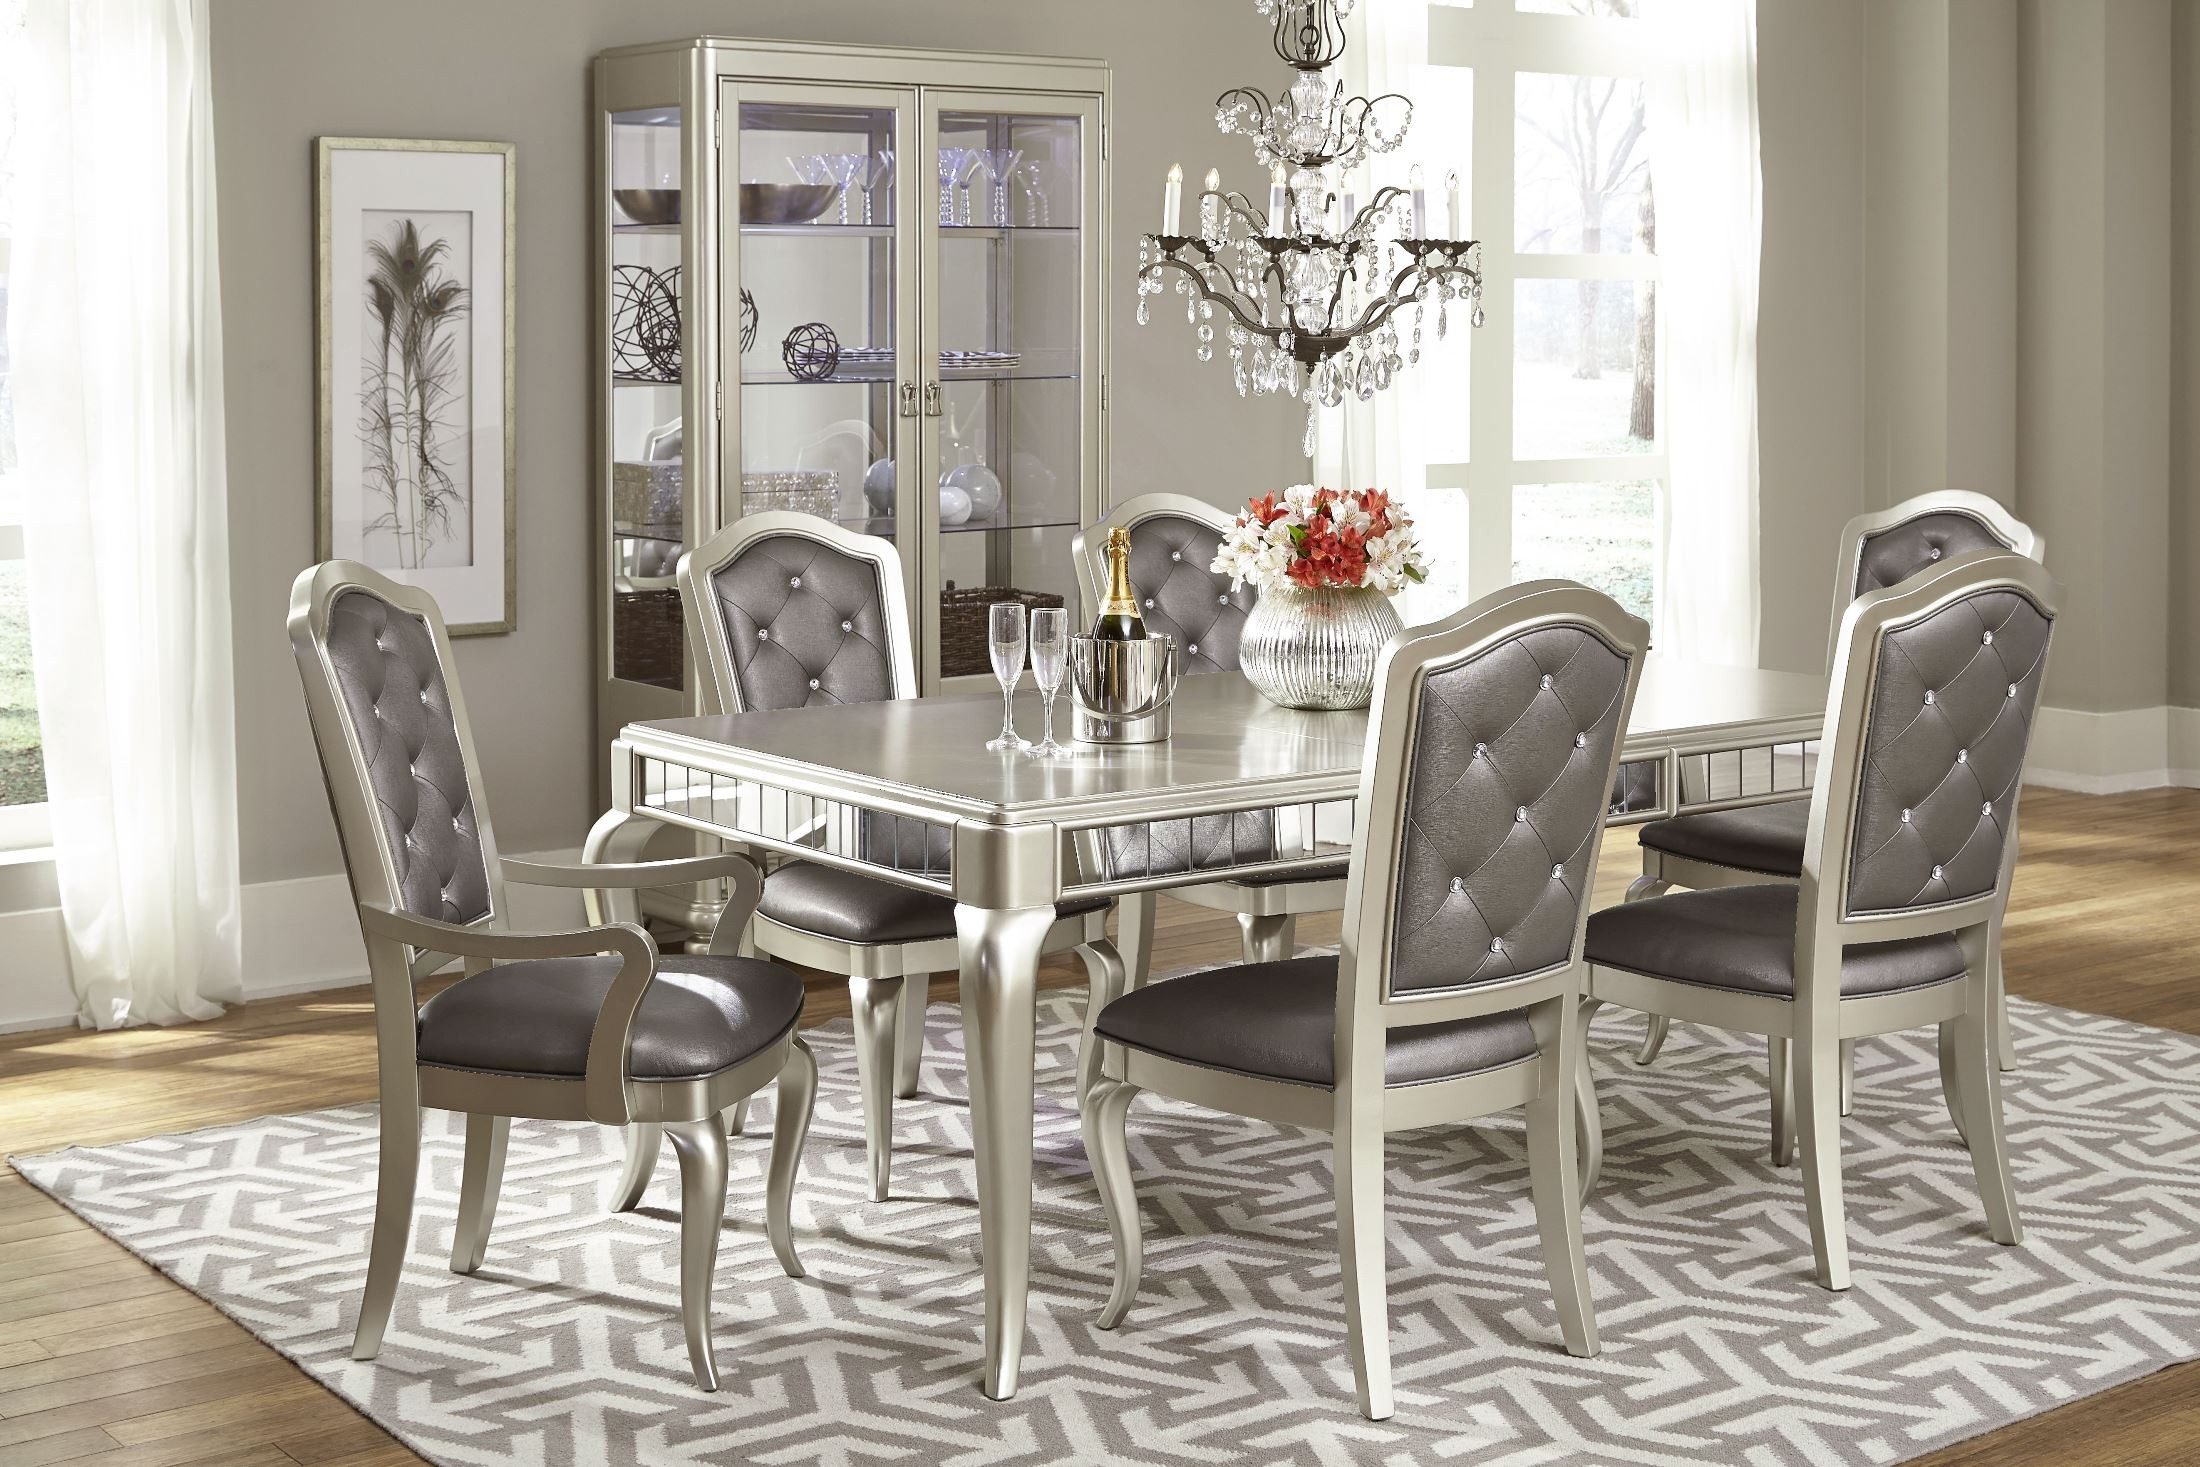 dining sets diva rectangular extendable leg dining room set YDLKGIP